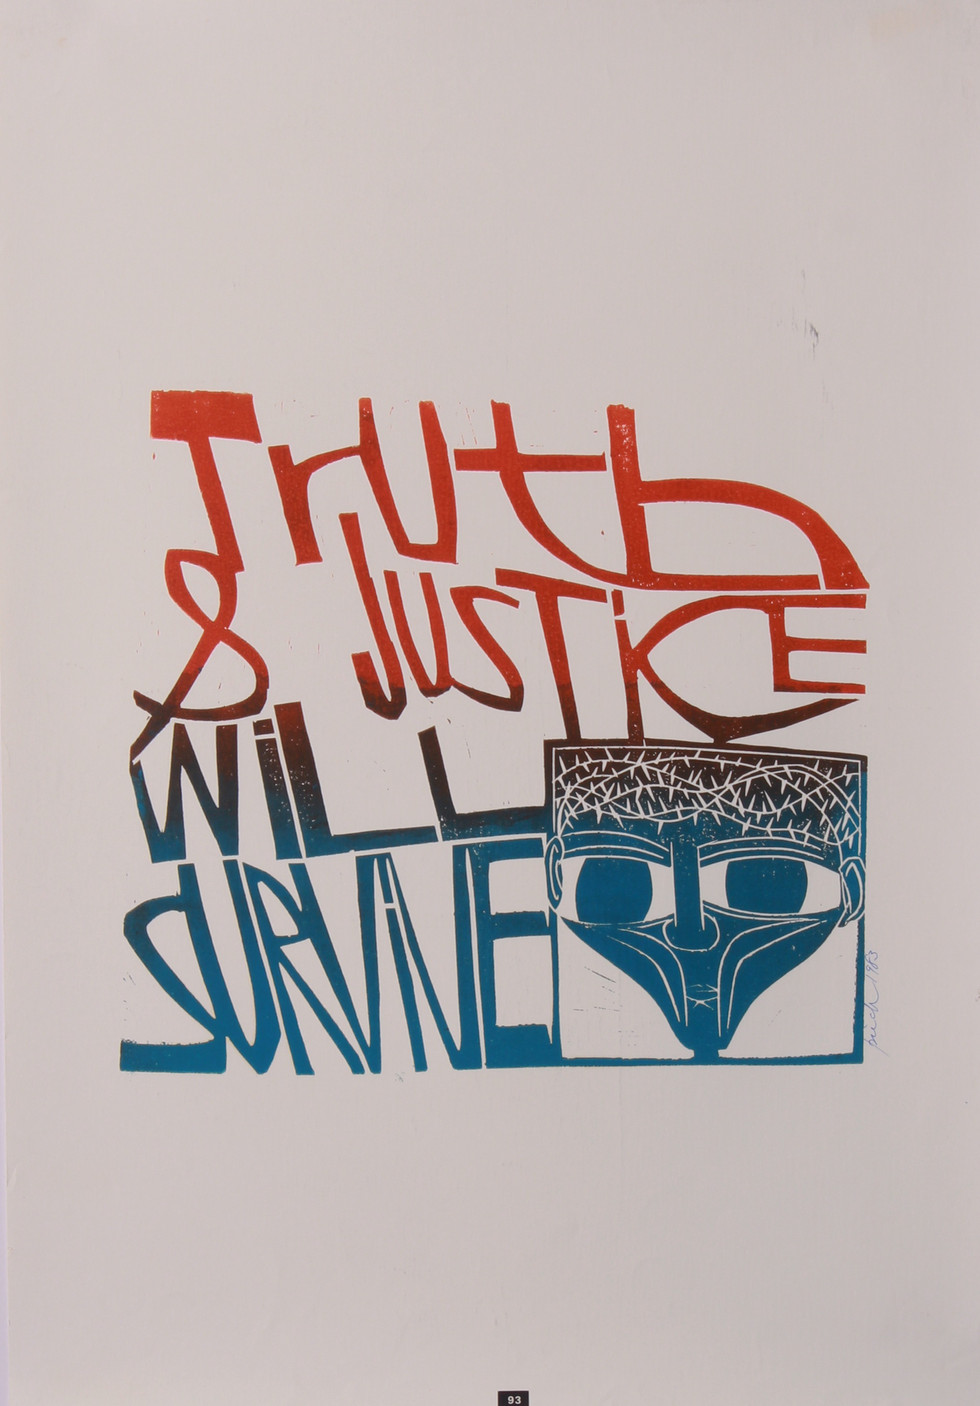 Truth & Justice Will Survive, 1983